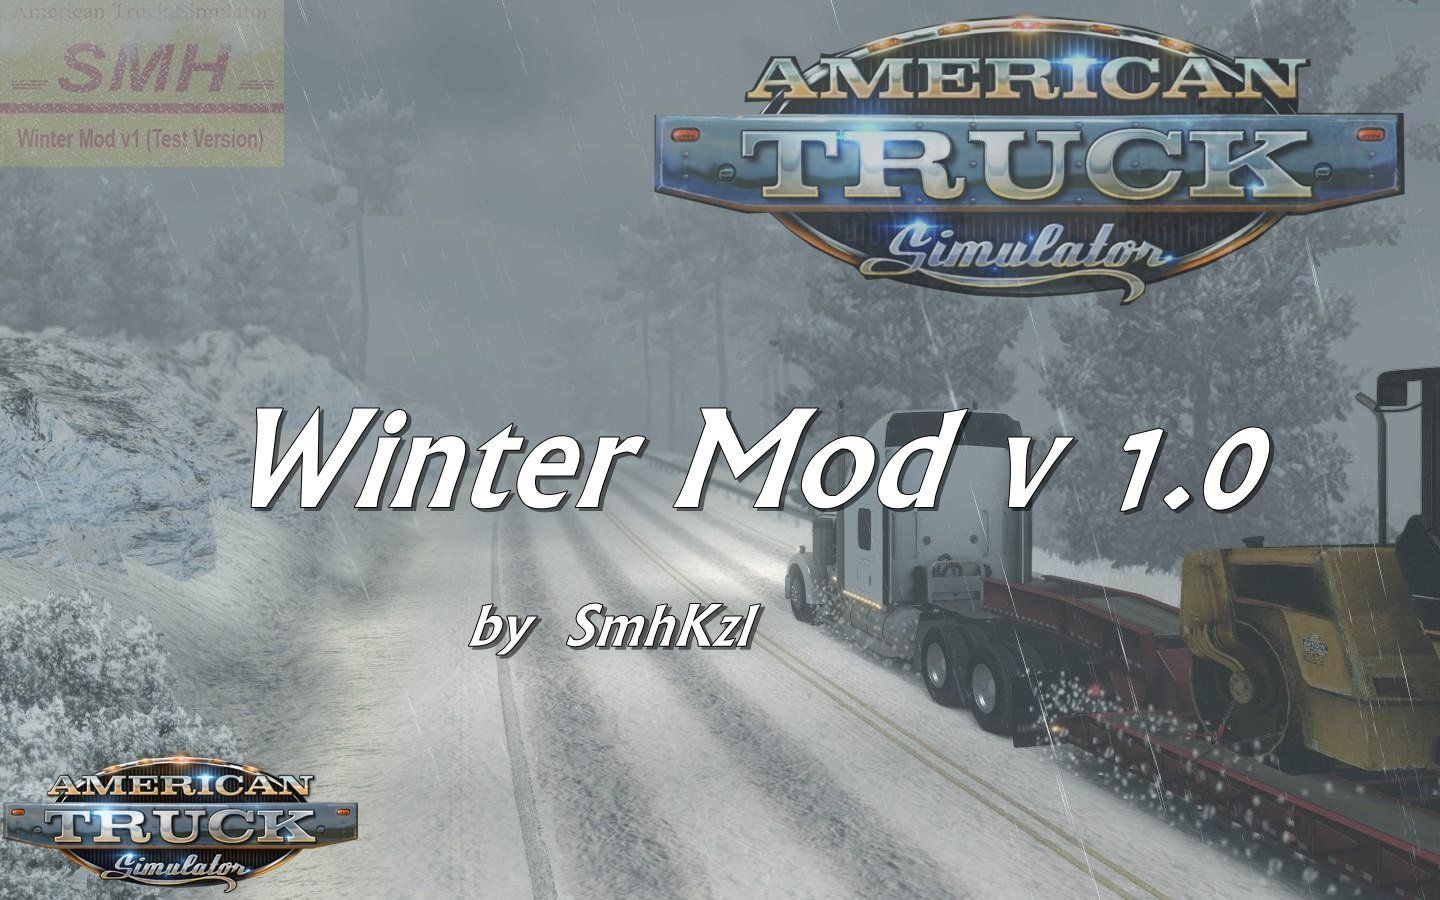 Winter Mod v1.0 by SmhKzl